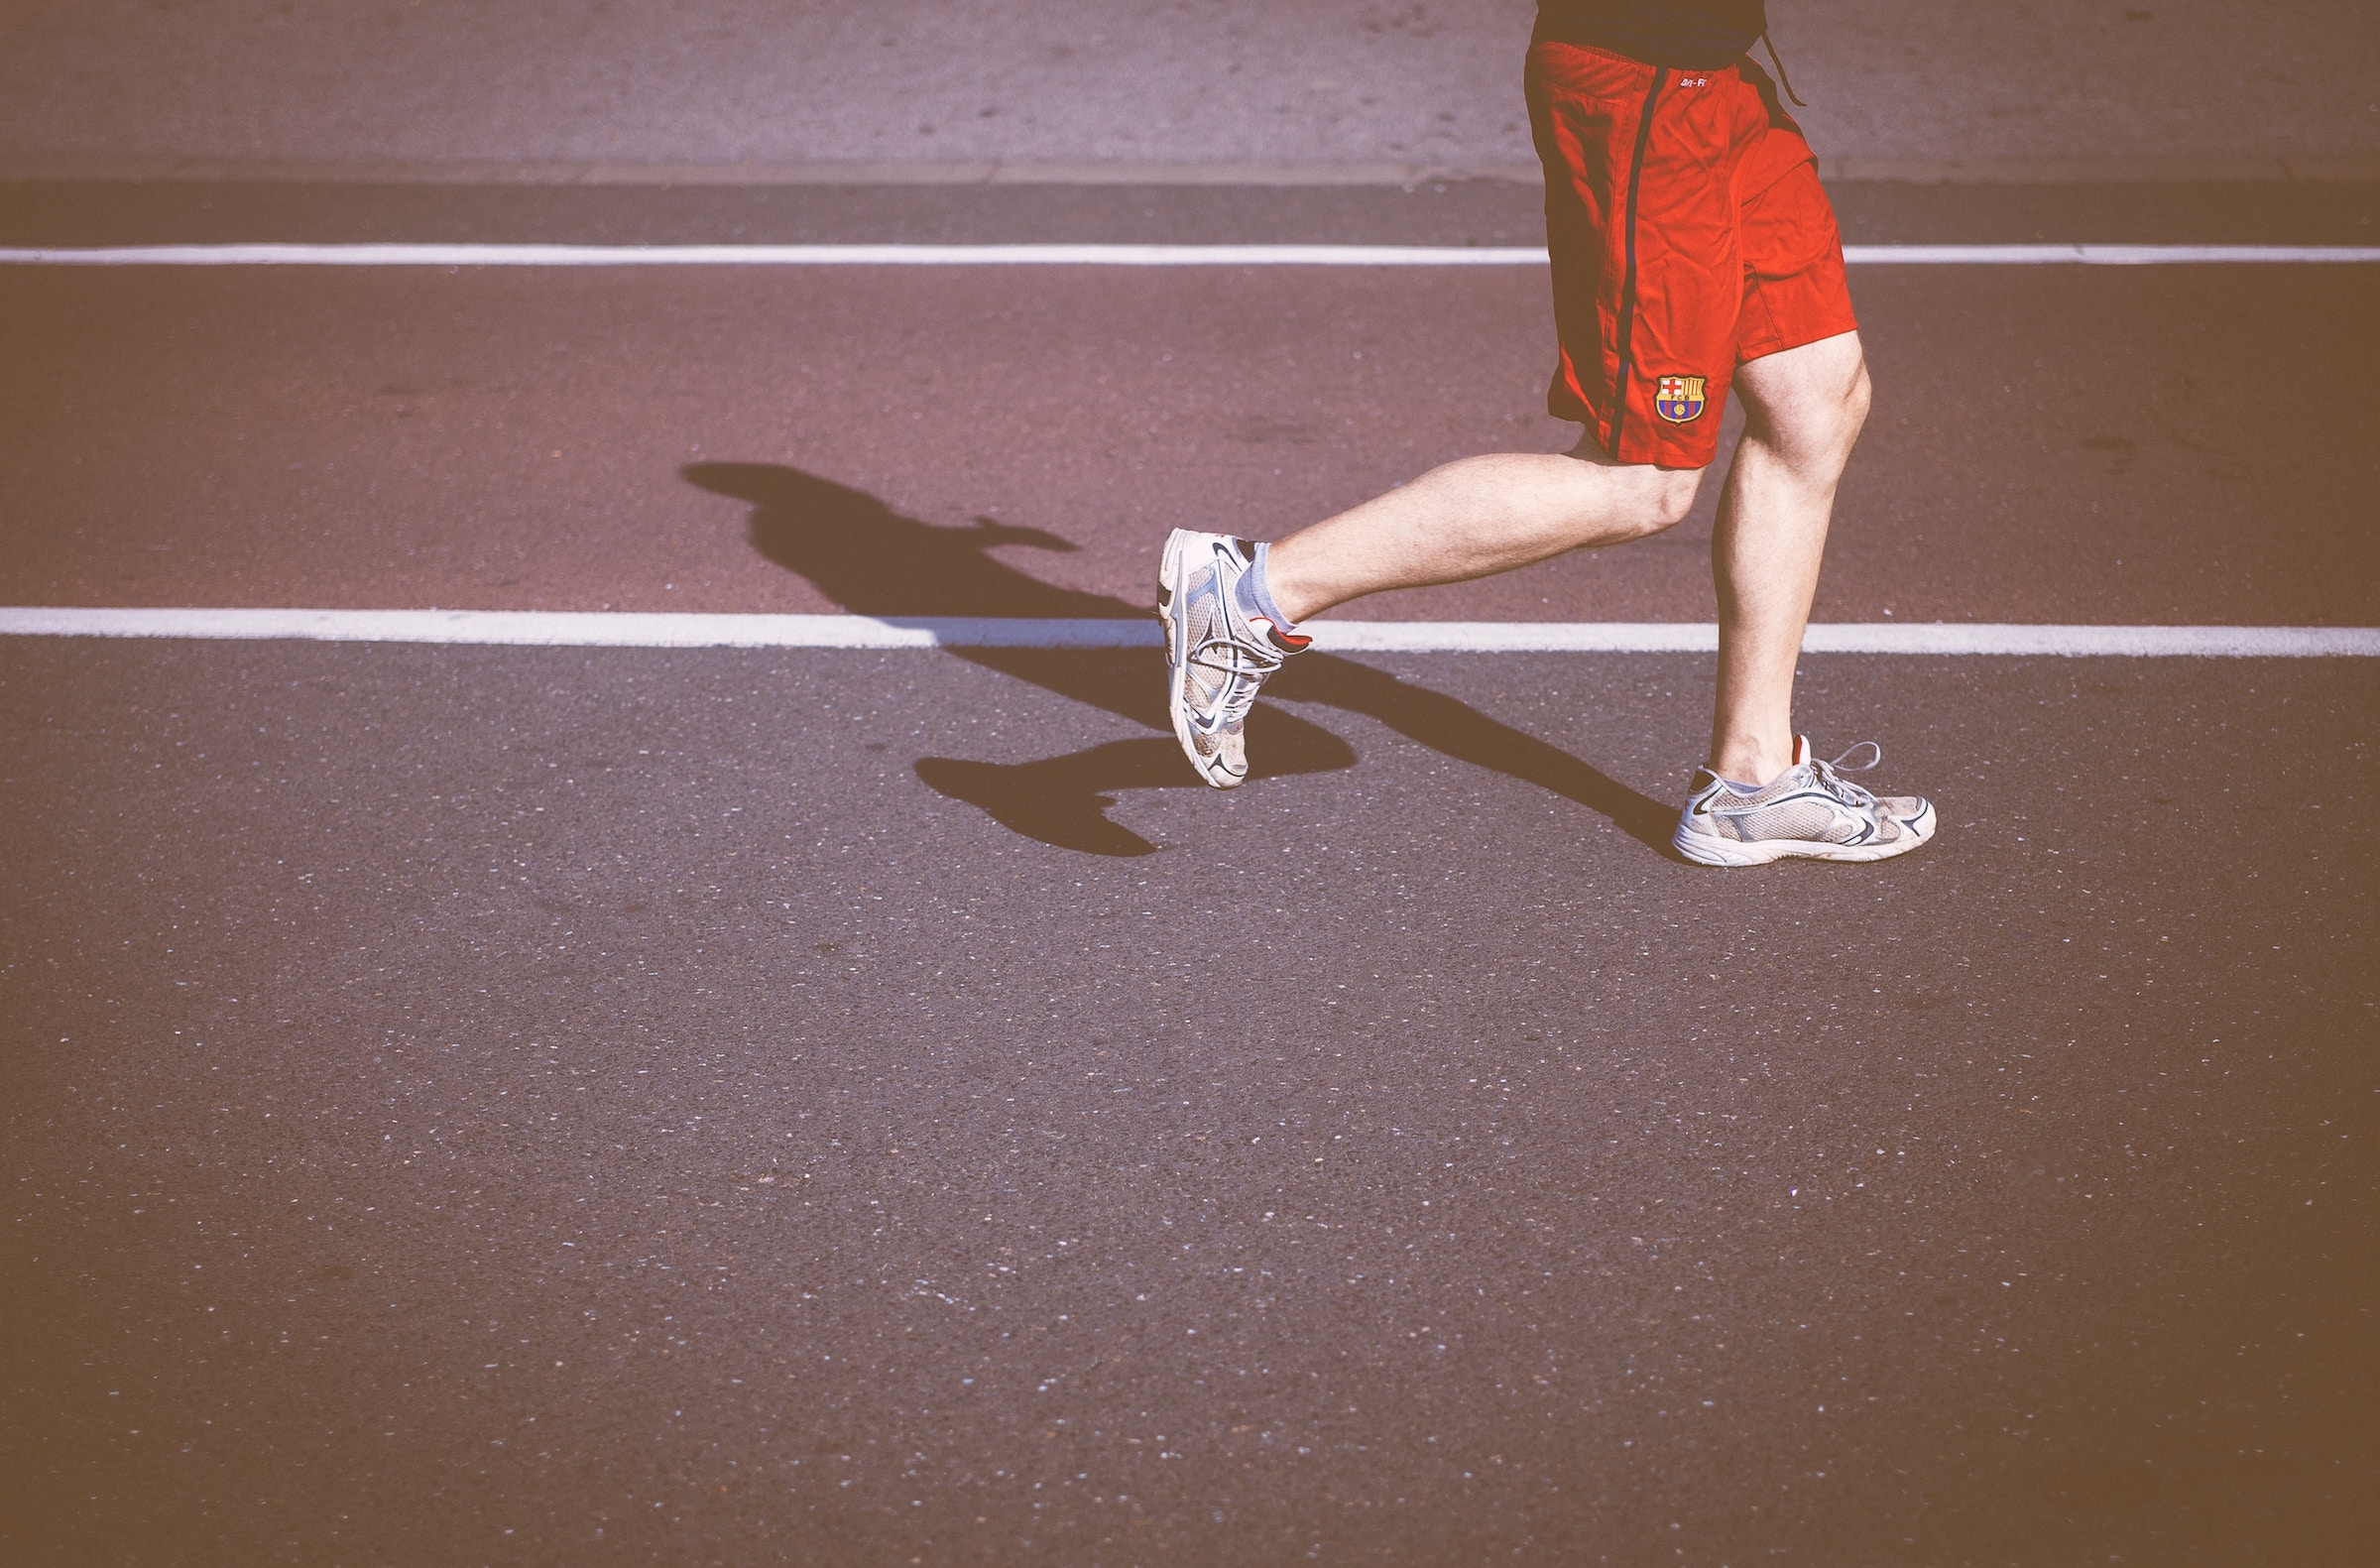 Man in red shorts running on a track